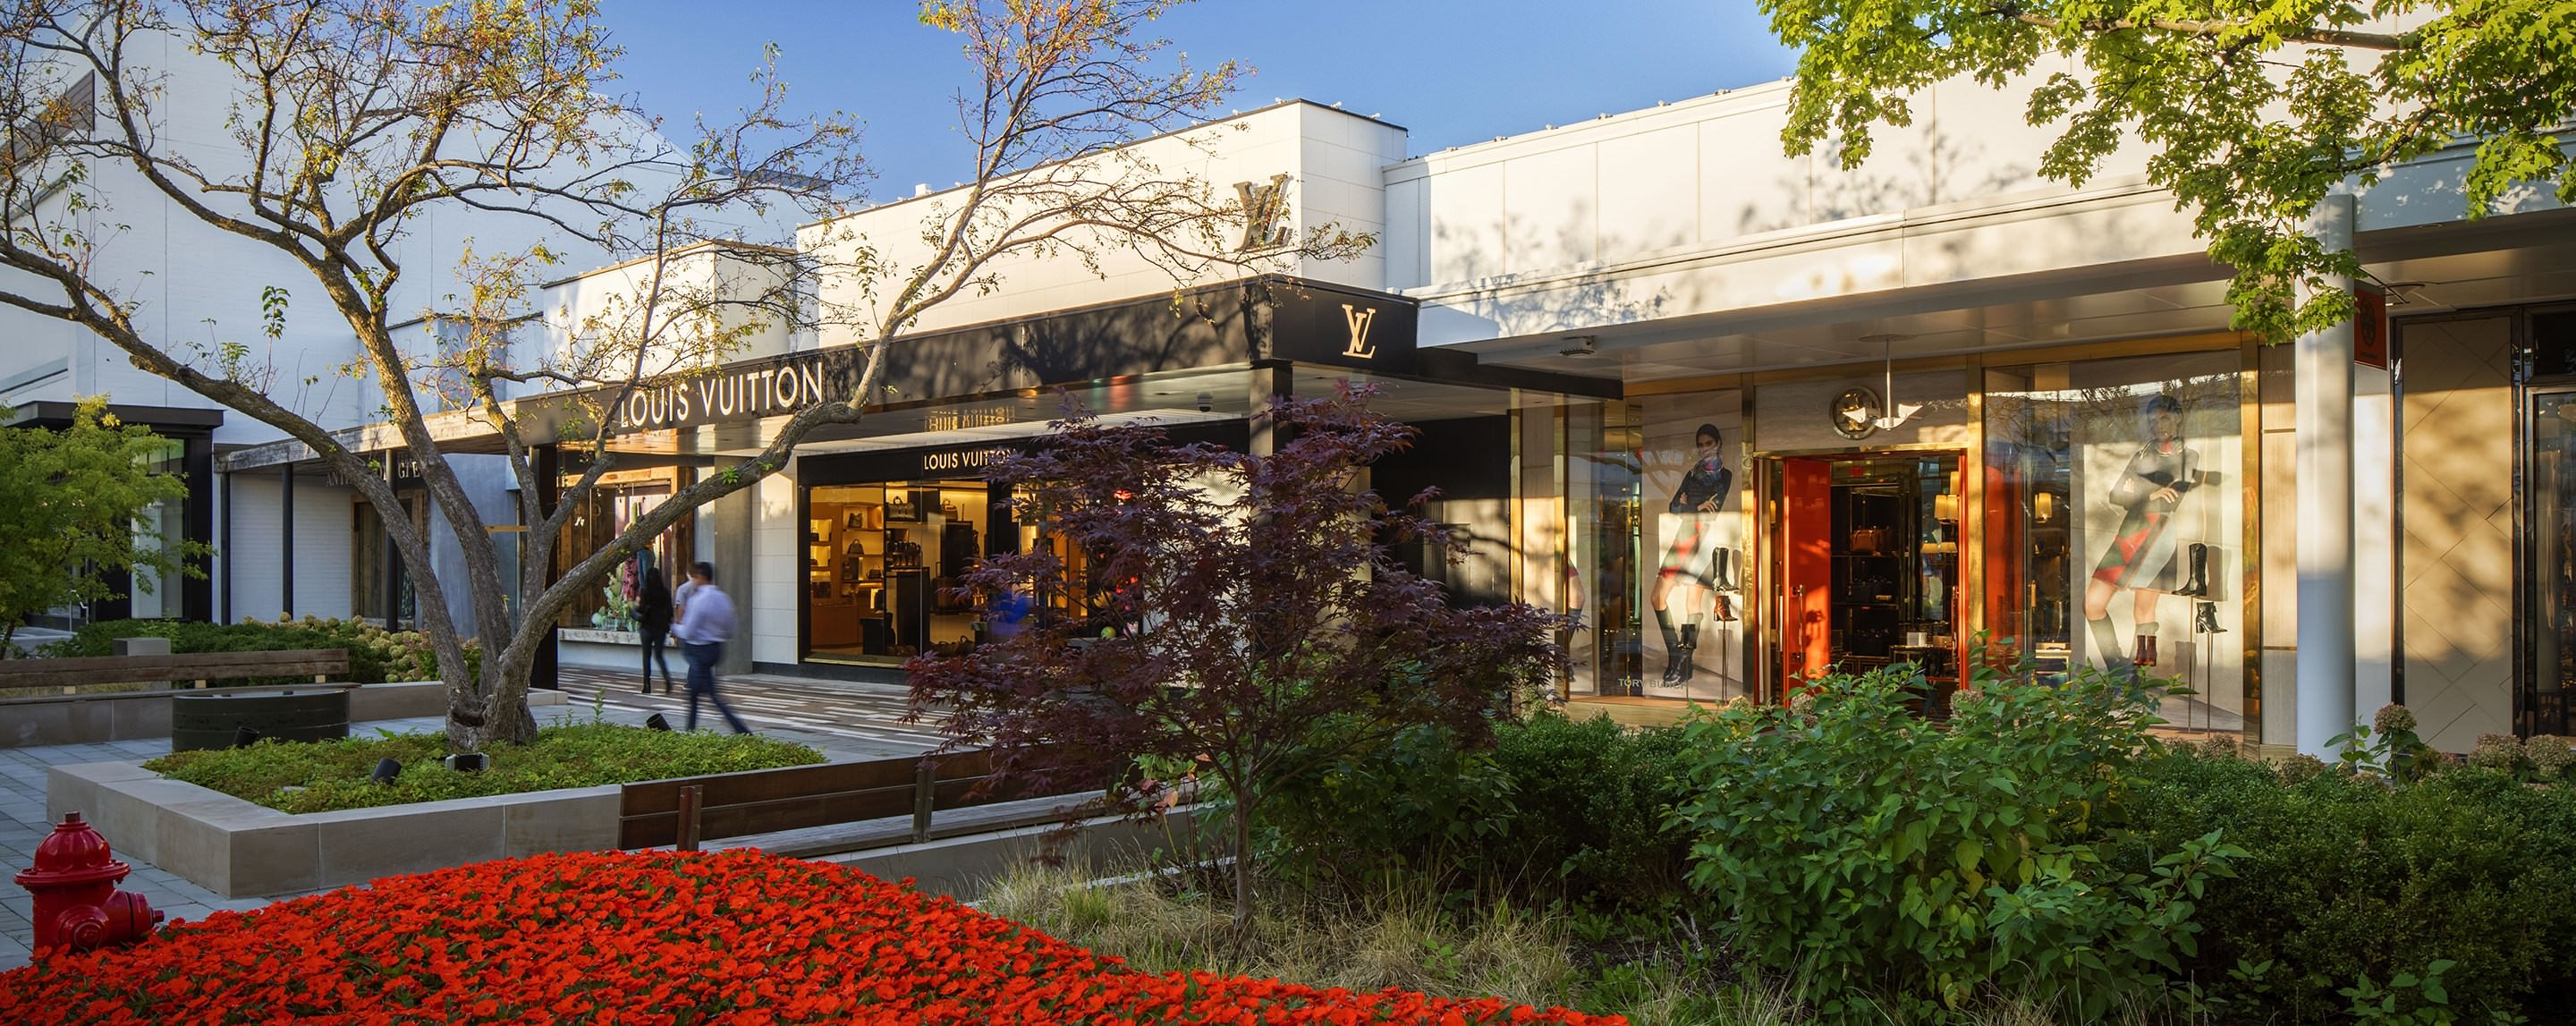 At dusk, Oakbrook Center shoppers stroll along an outdoor walkway lined with storefronts, flowers, and trees